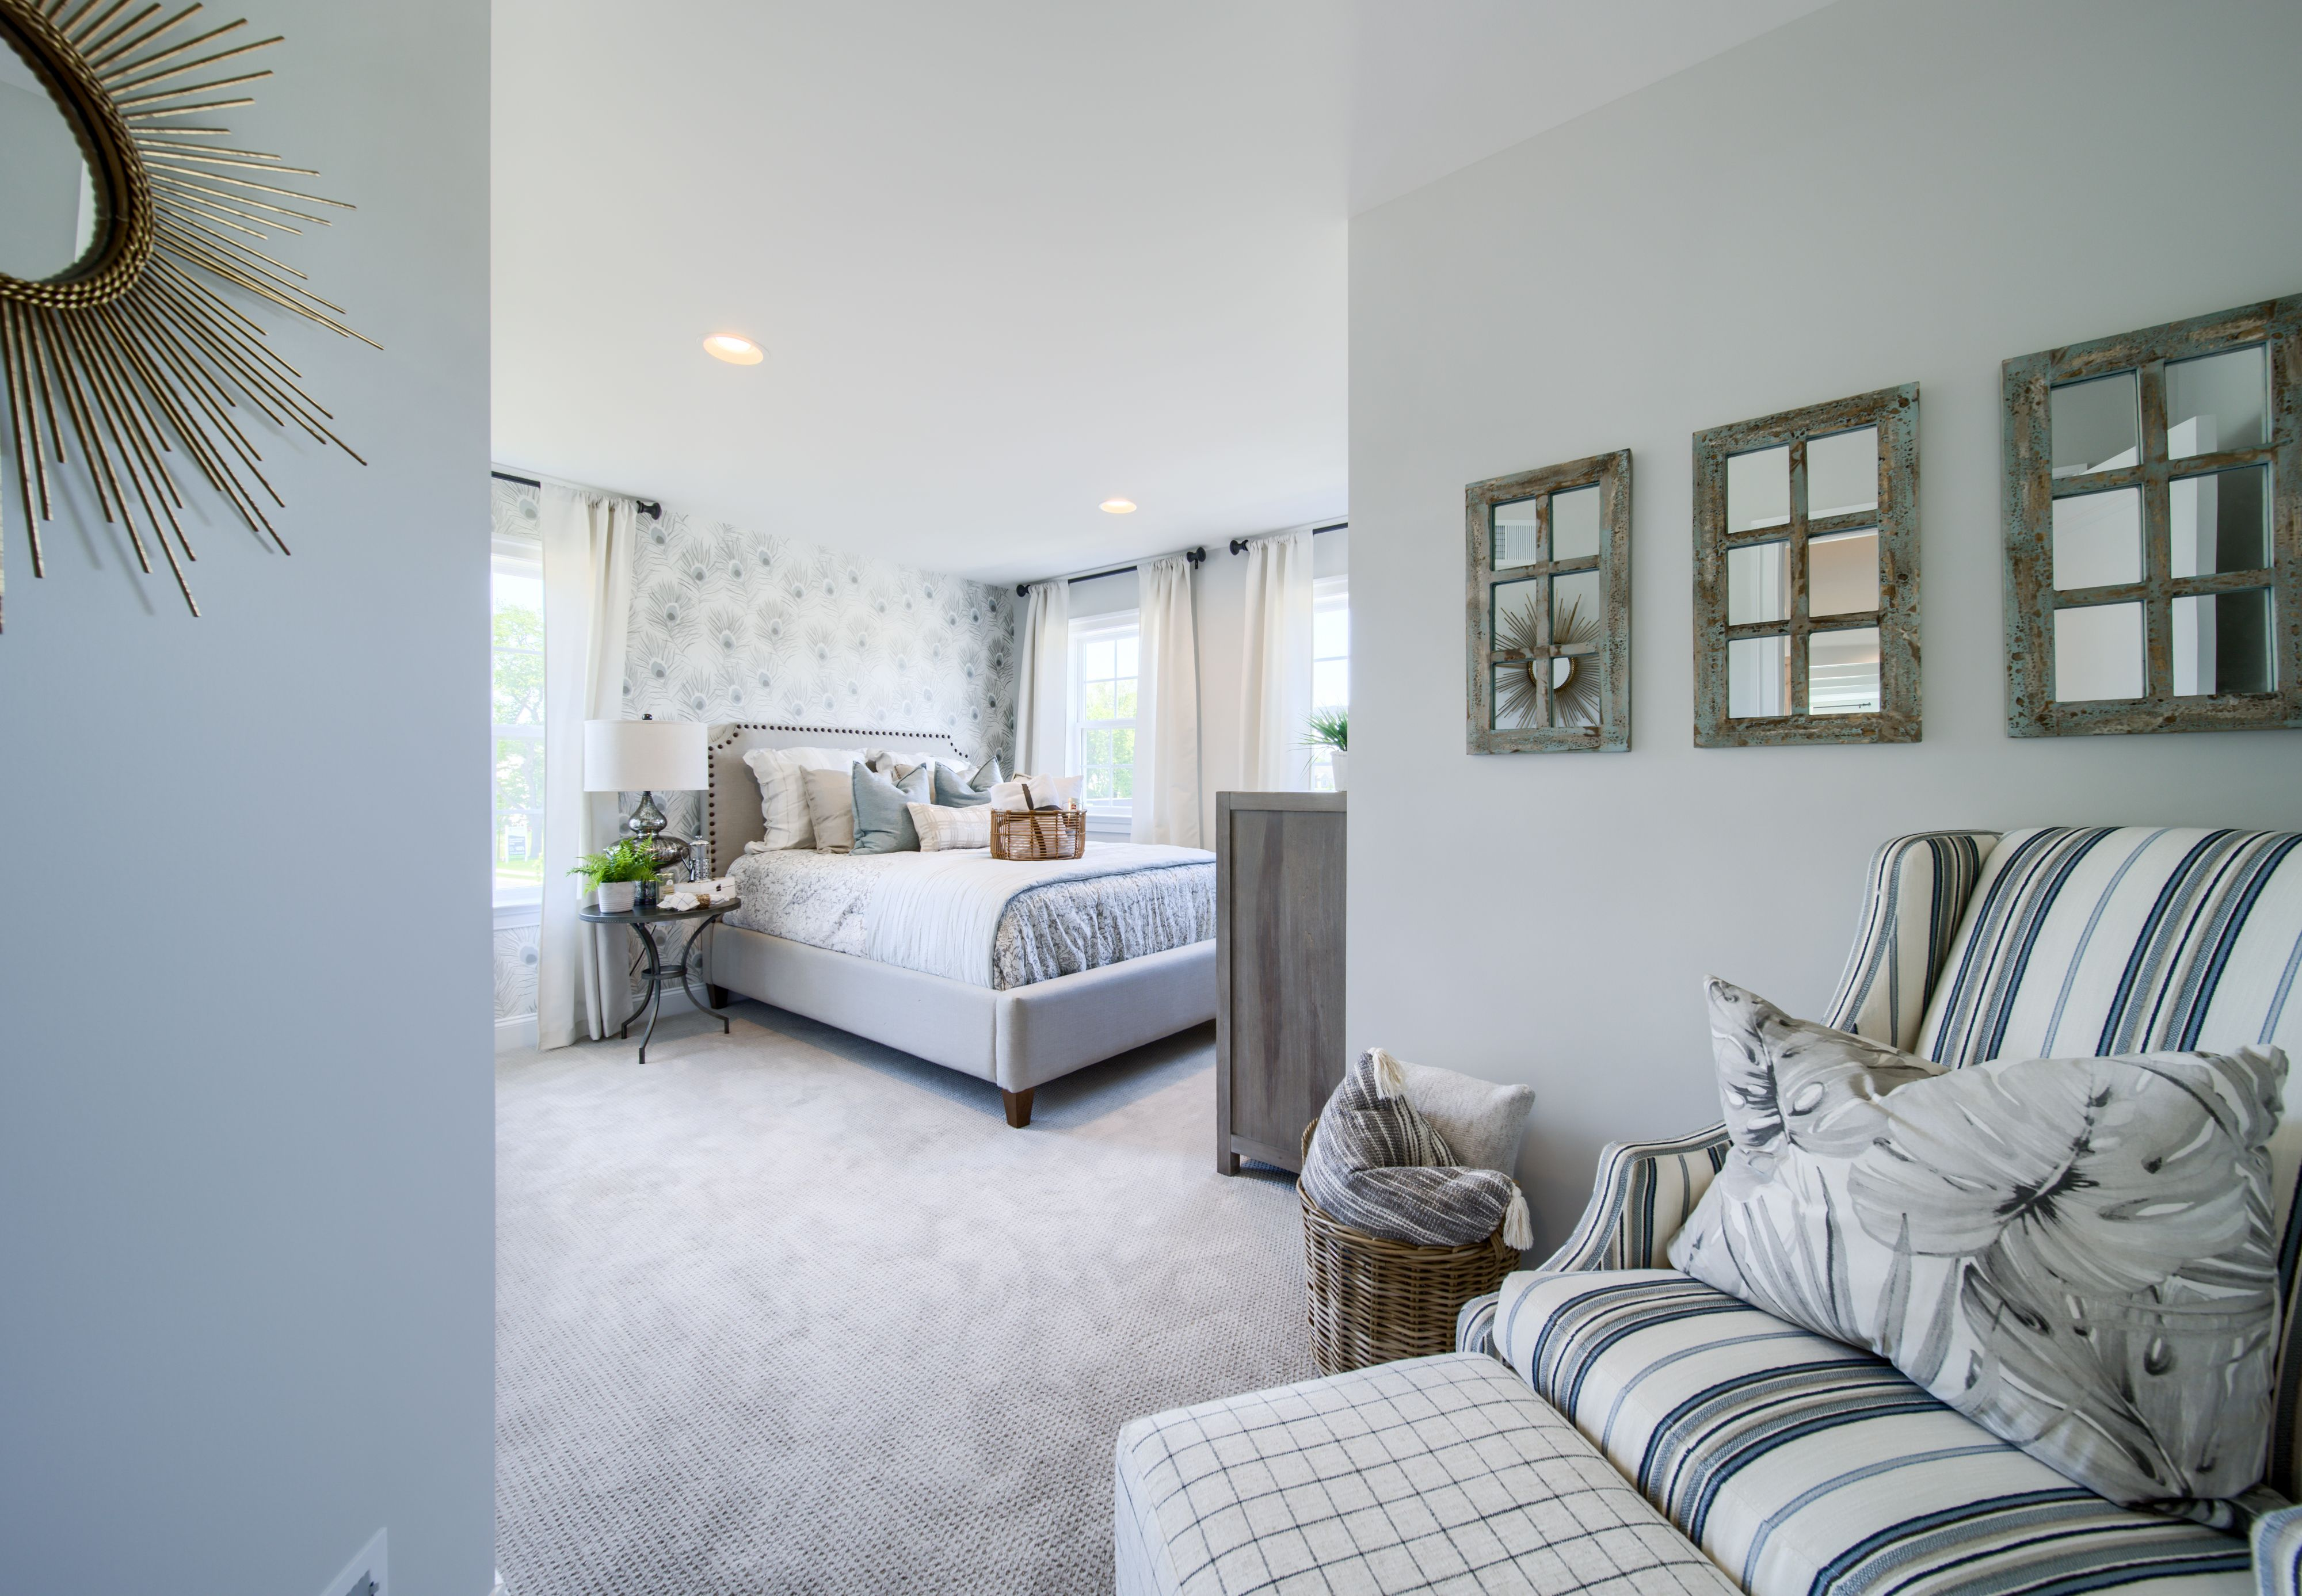 Bedroom featured in the Manchester Manor By Keystone Custom Homes in Lancaster, PA